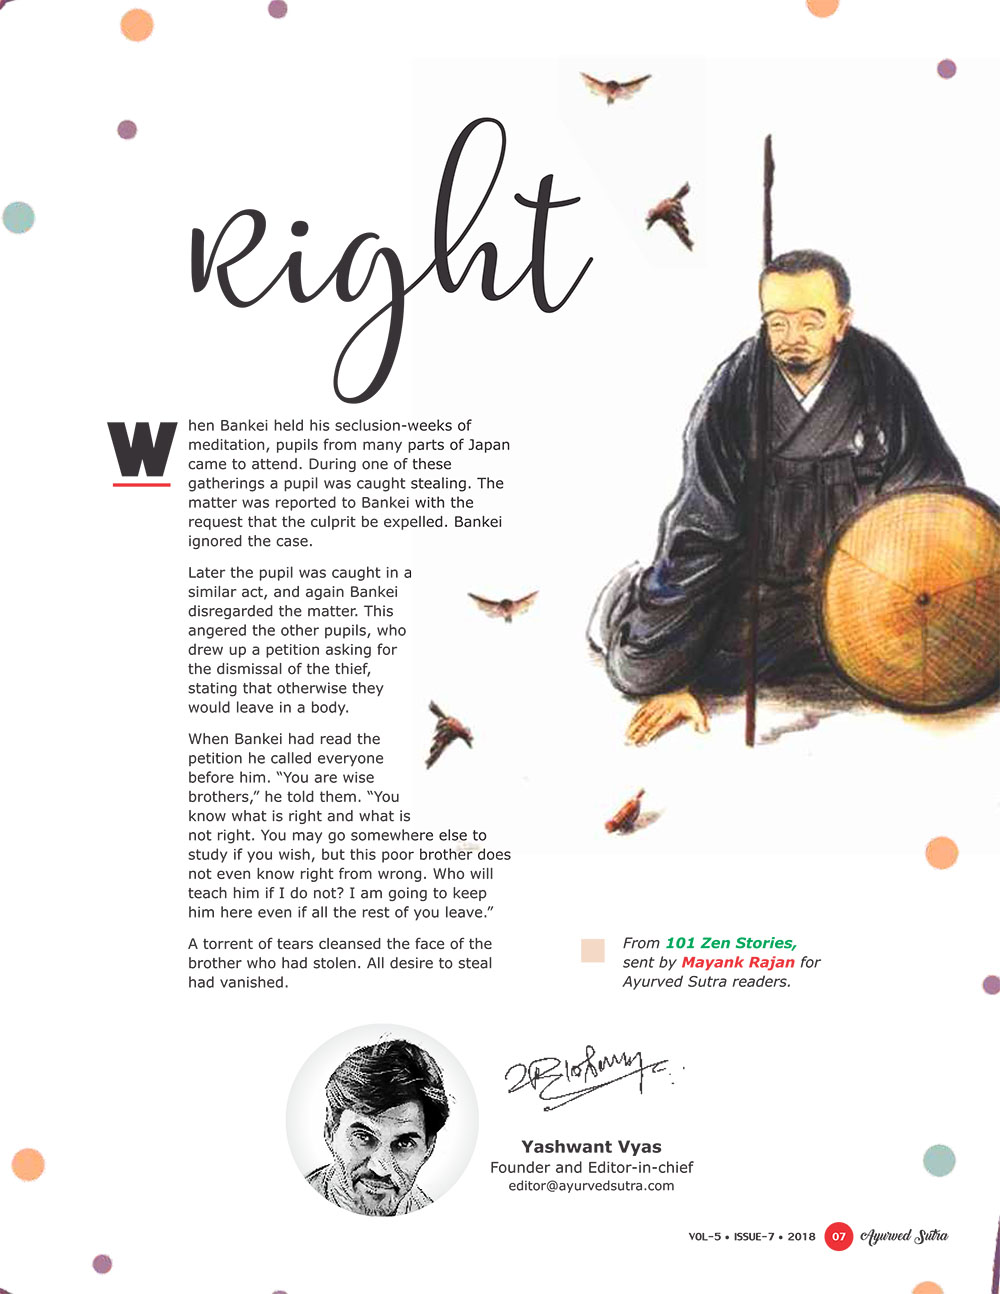 Ayurvedsutra Vol 05 issue 07 9 - Right